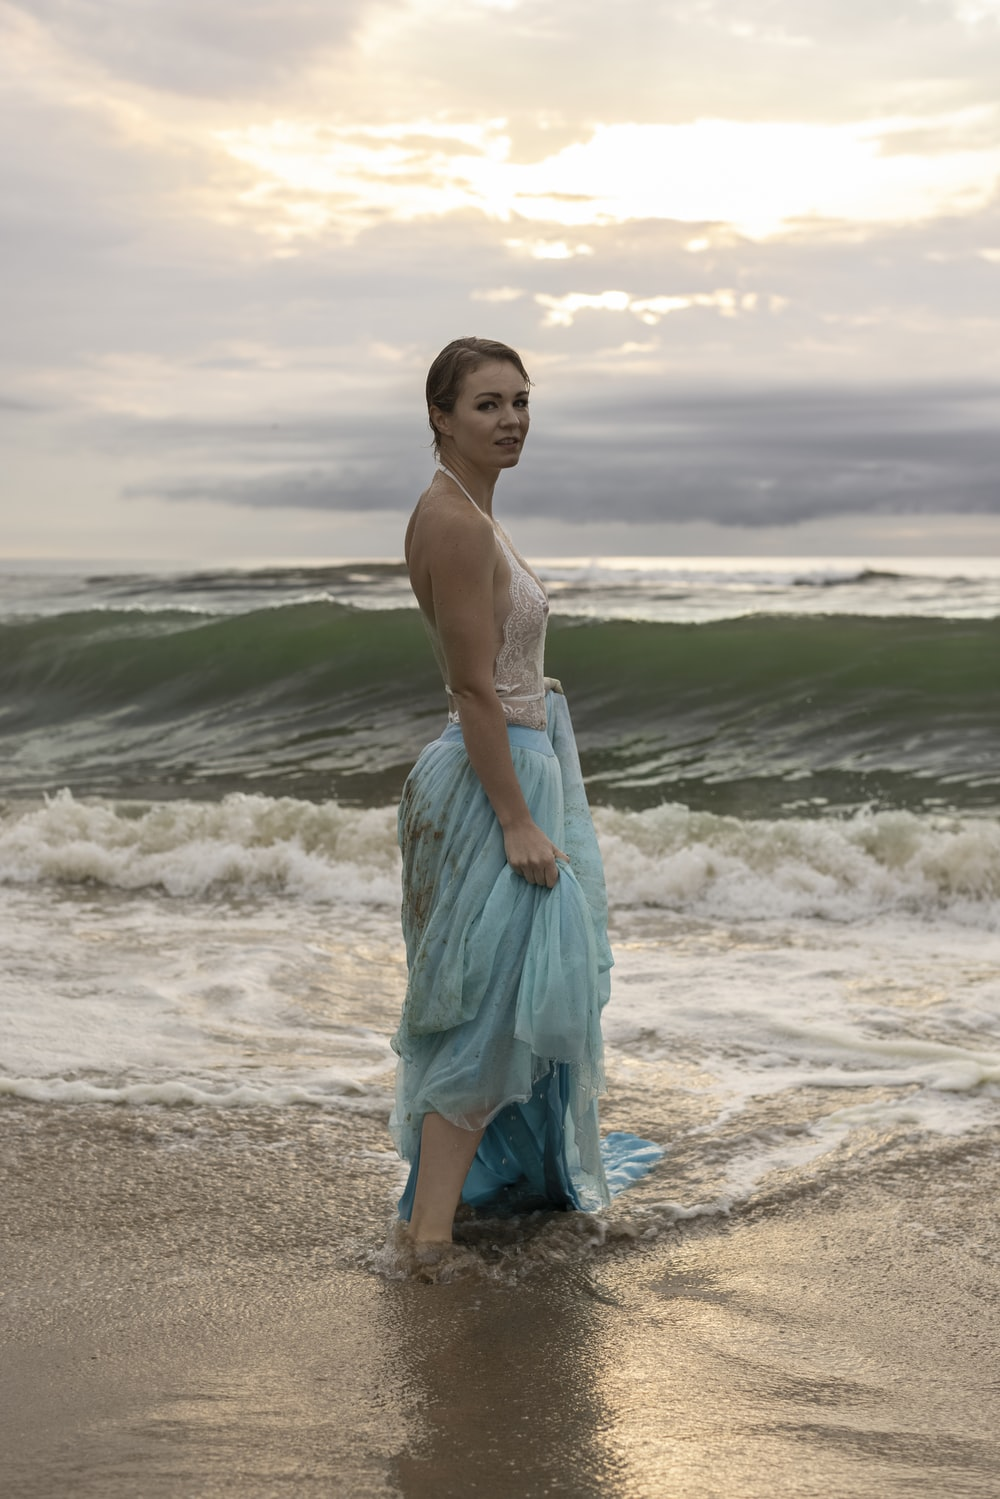 woman in blue dress standing on beach during daytime